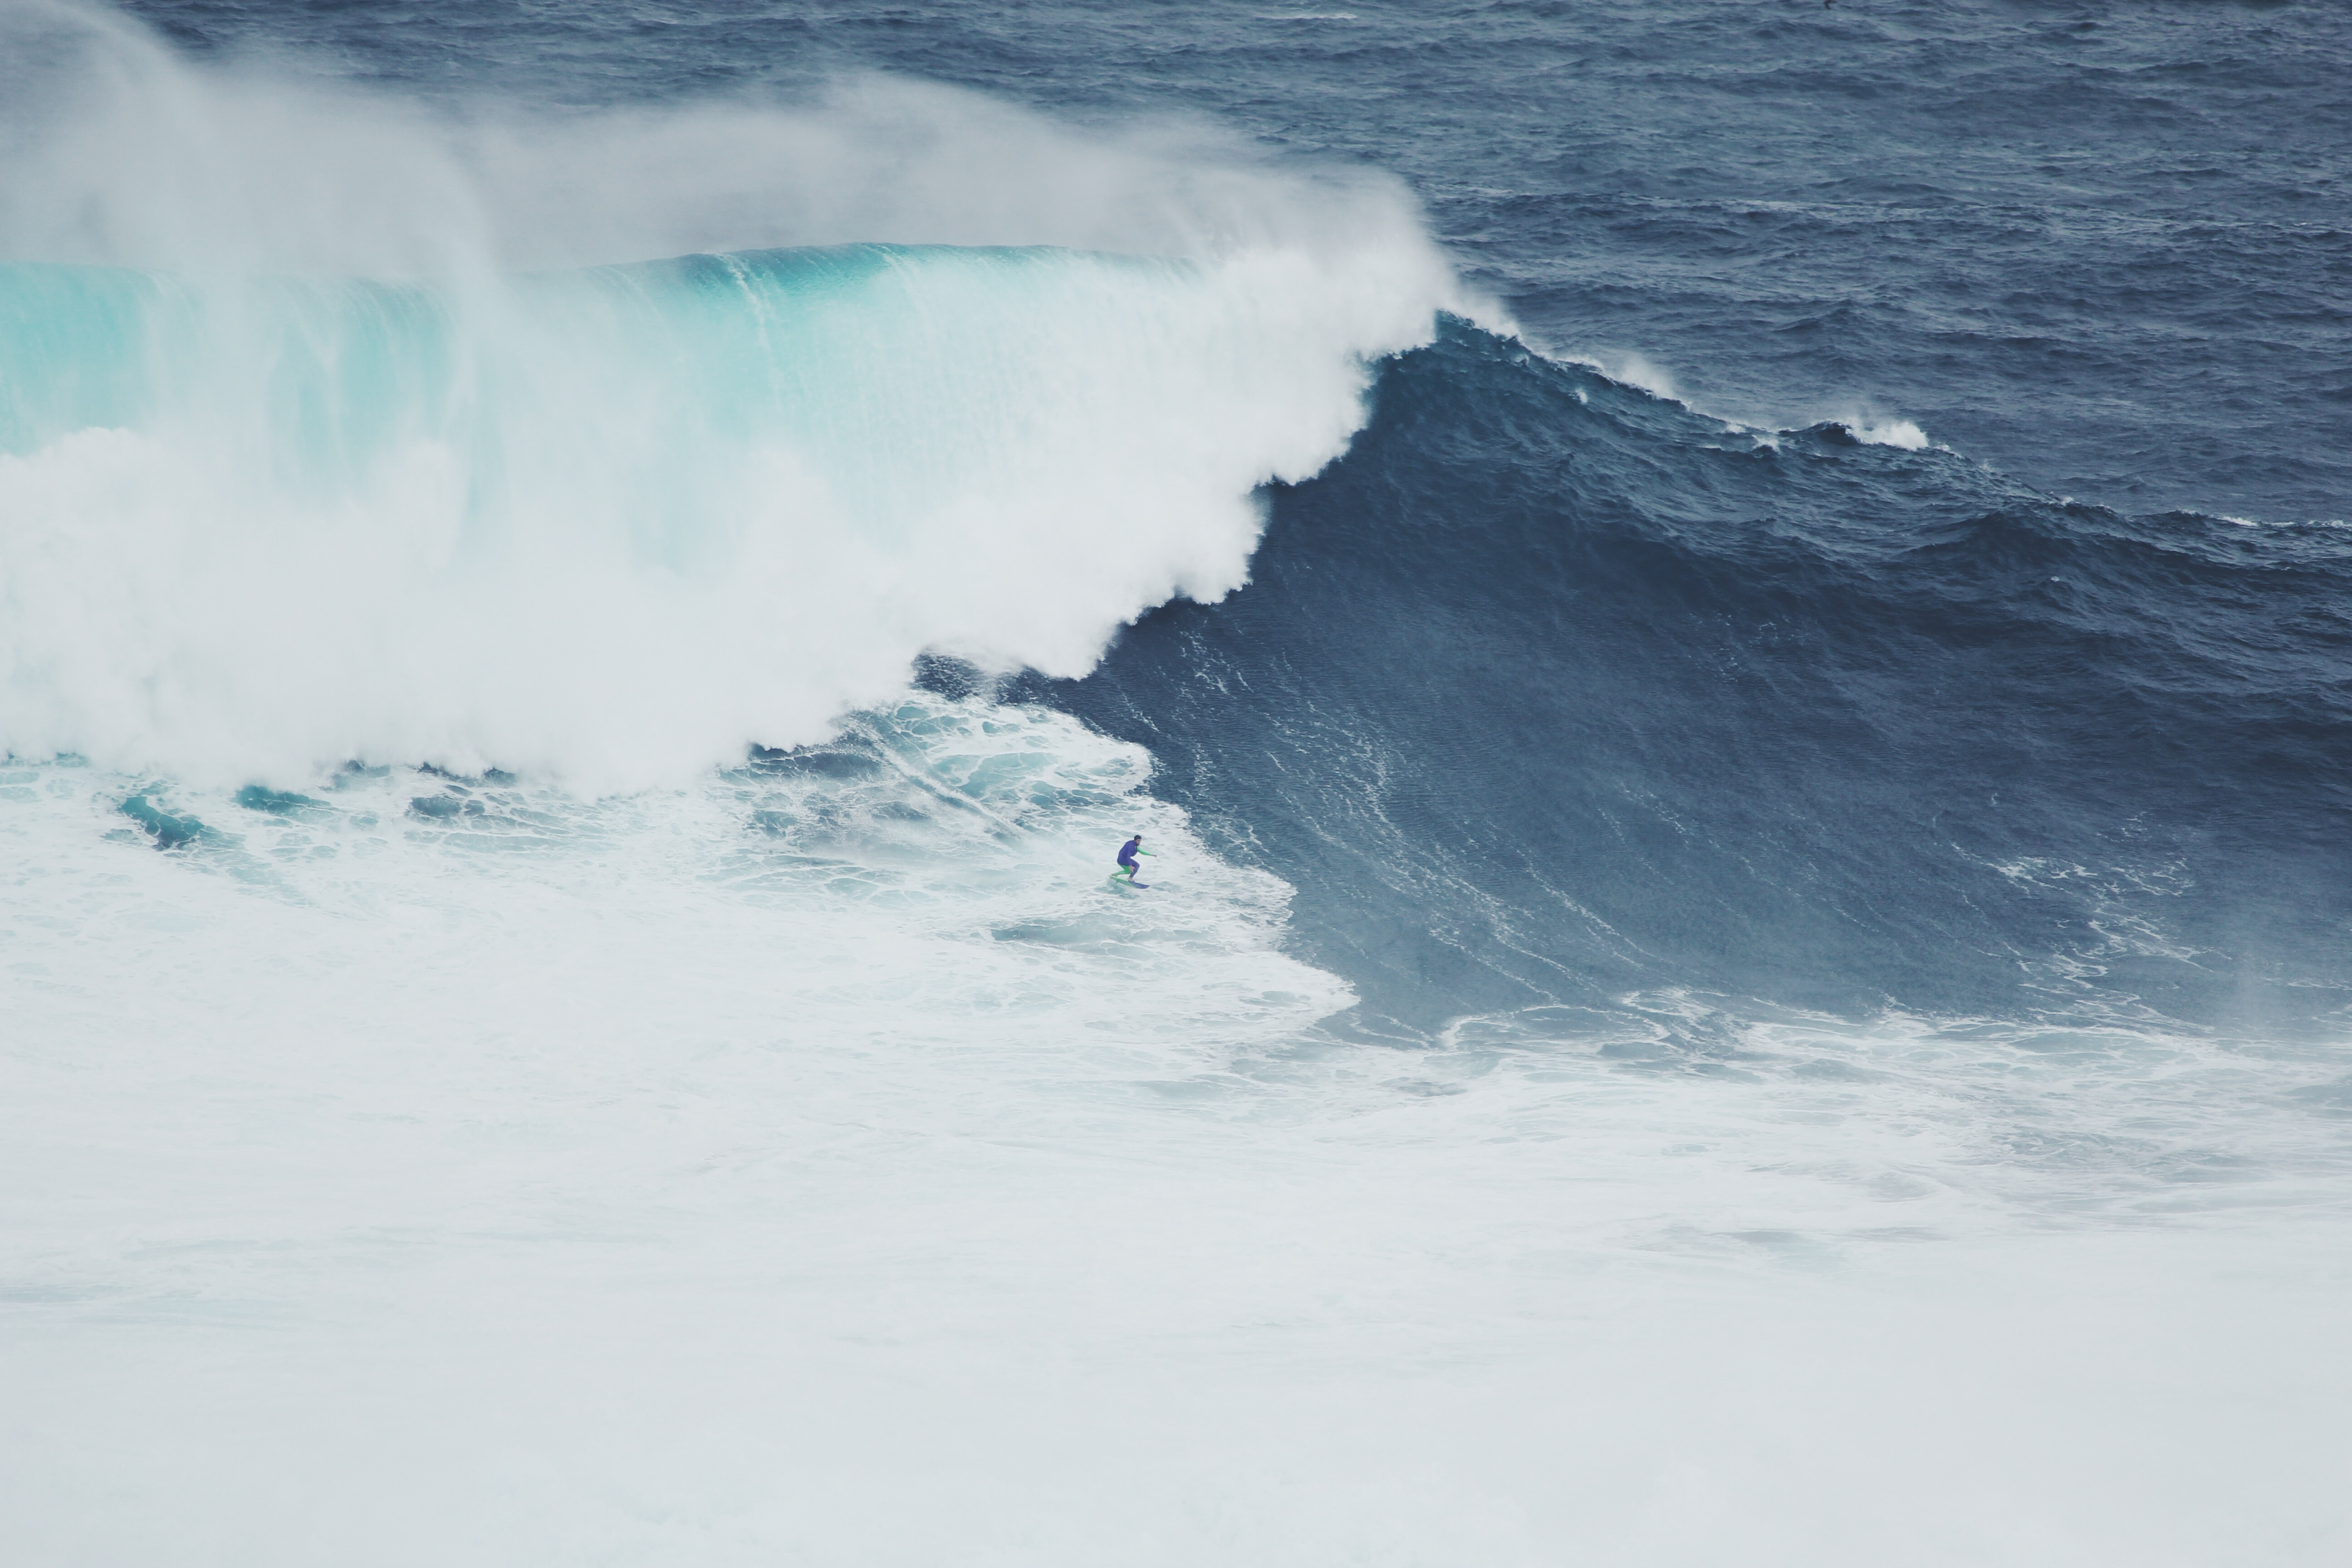 Crashing waves in the blue sea at Nazaré